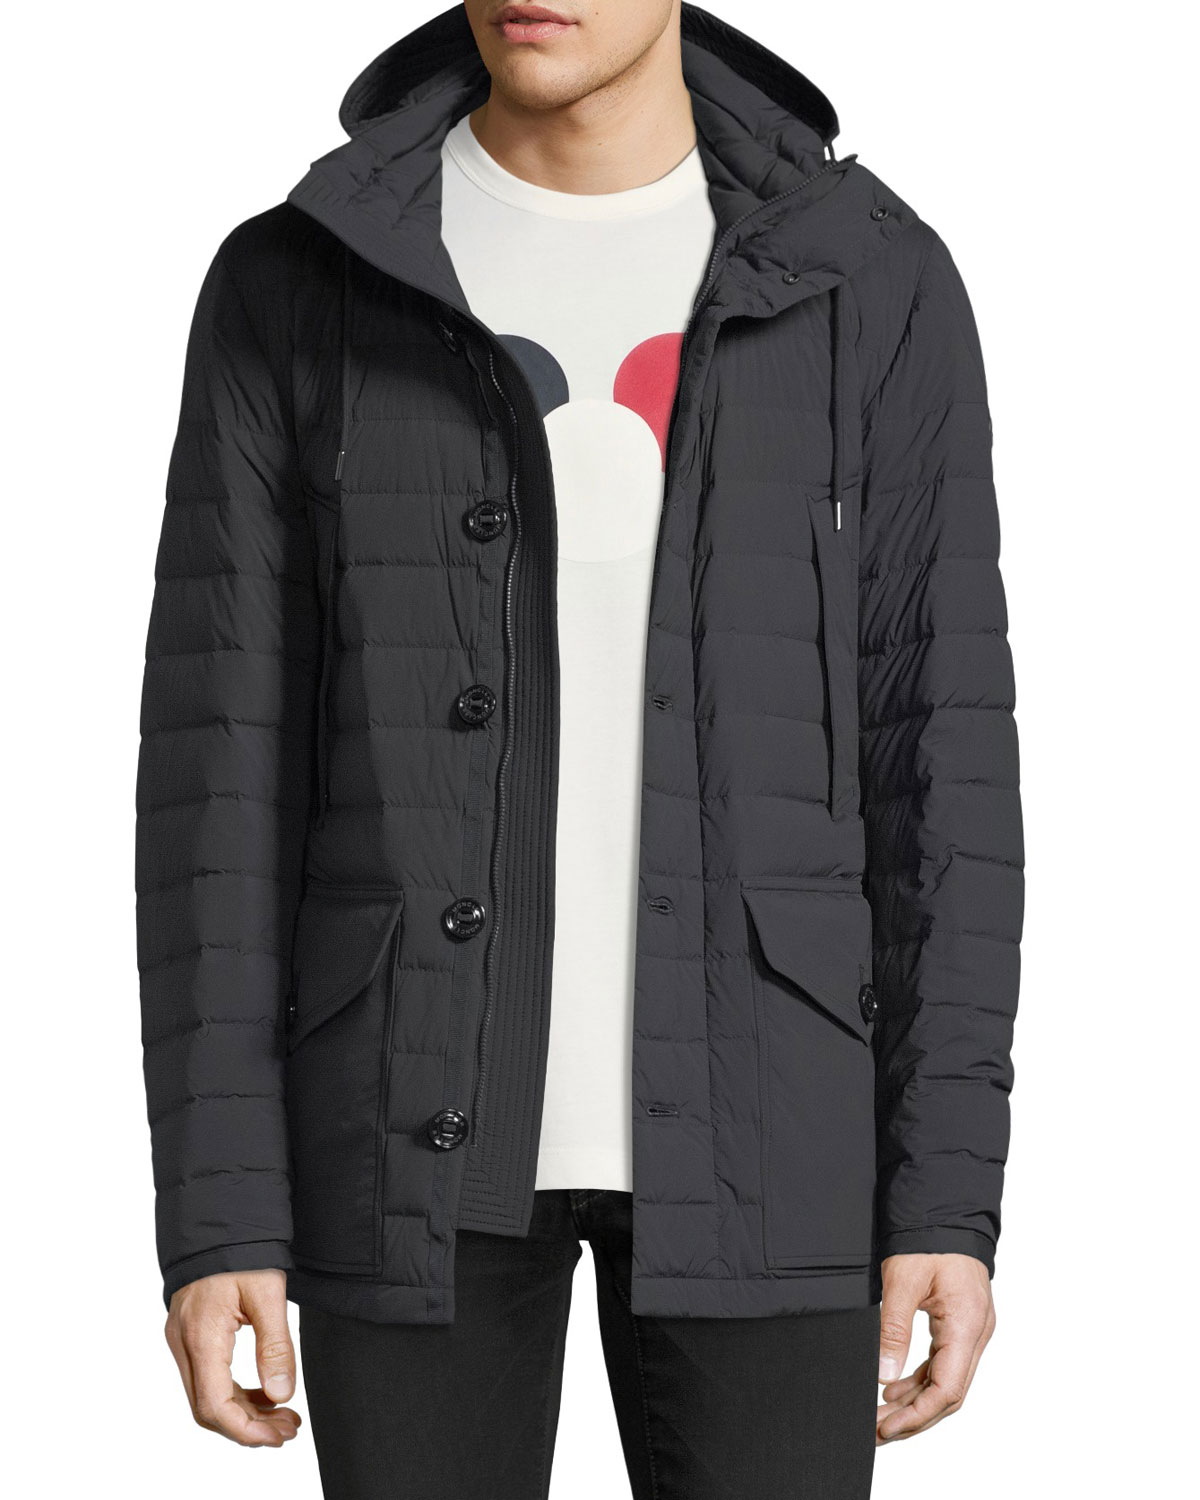 239e73f254a Quick Look. Moncler · Cigales Hooded Jacket. Available in Black